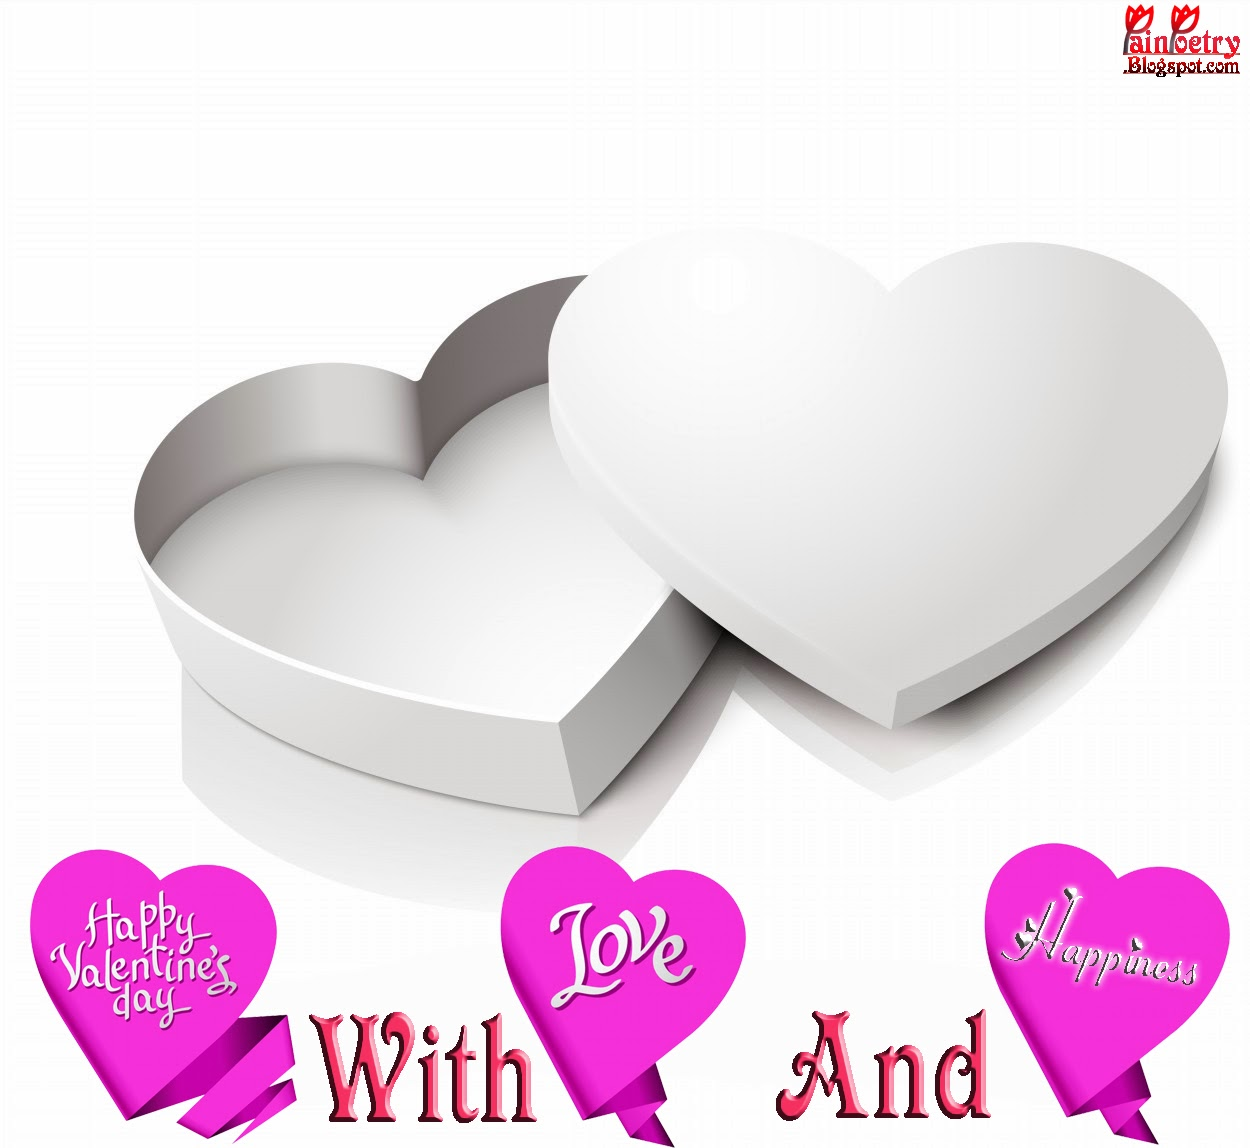 Happy-Valentines-Day-Wishes-Walpapers-Heart-Frame-Image-HD